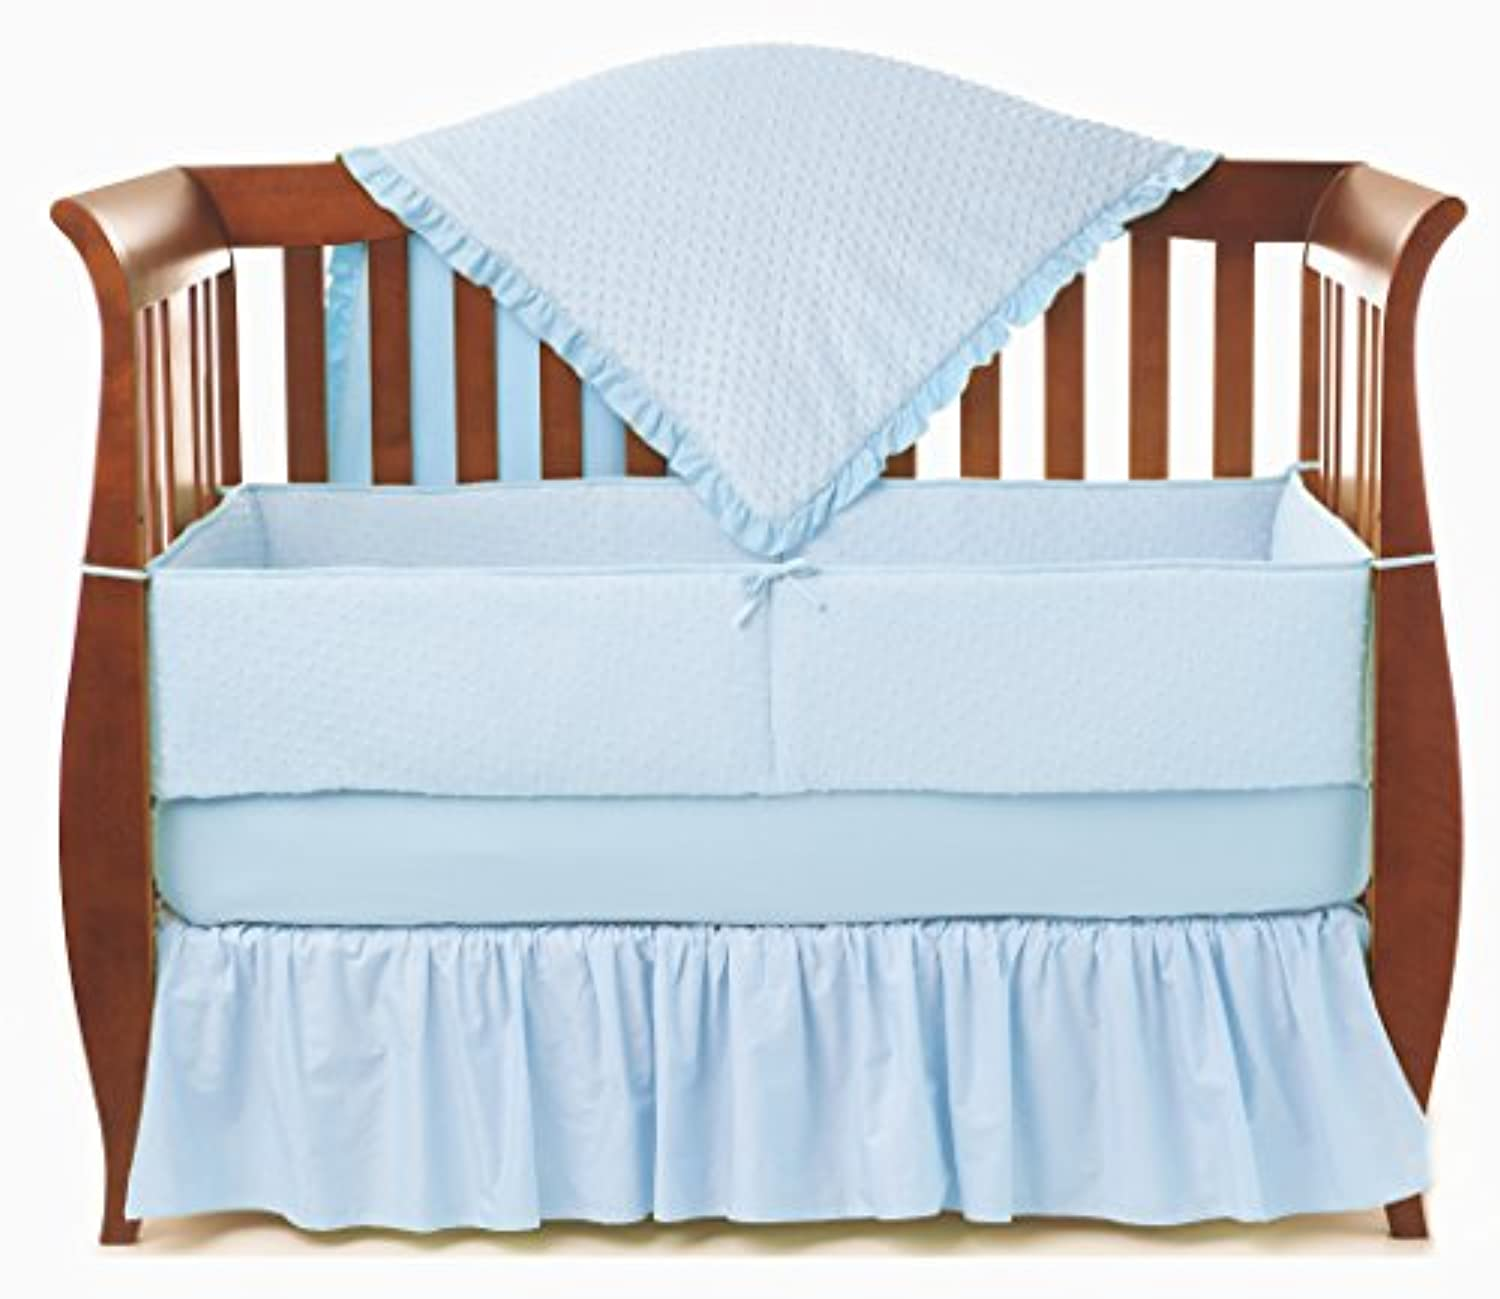 American Baby Company Heavenly Soft Minky Dot 4-Piece Crib Bedding Set, Blue by American Baby Company